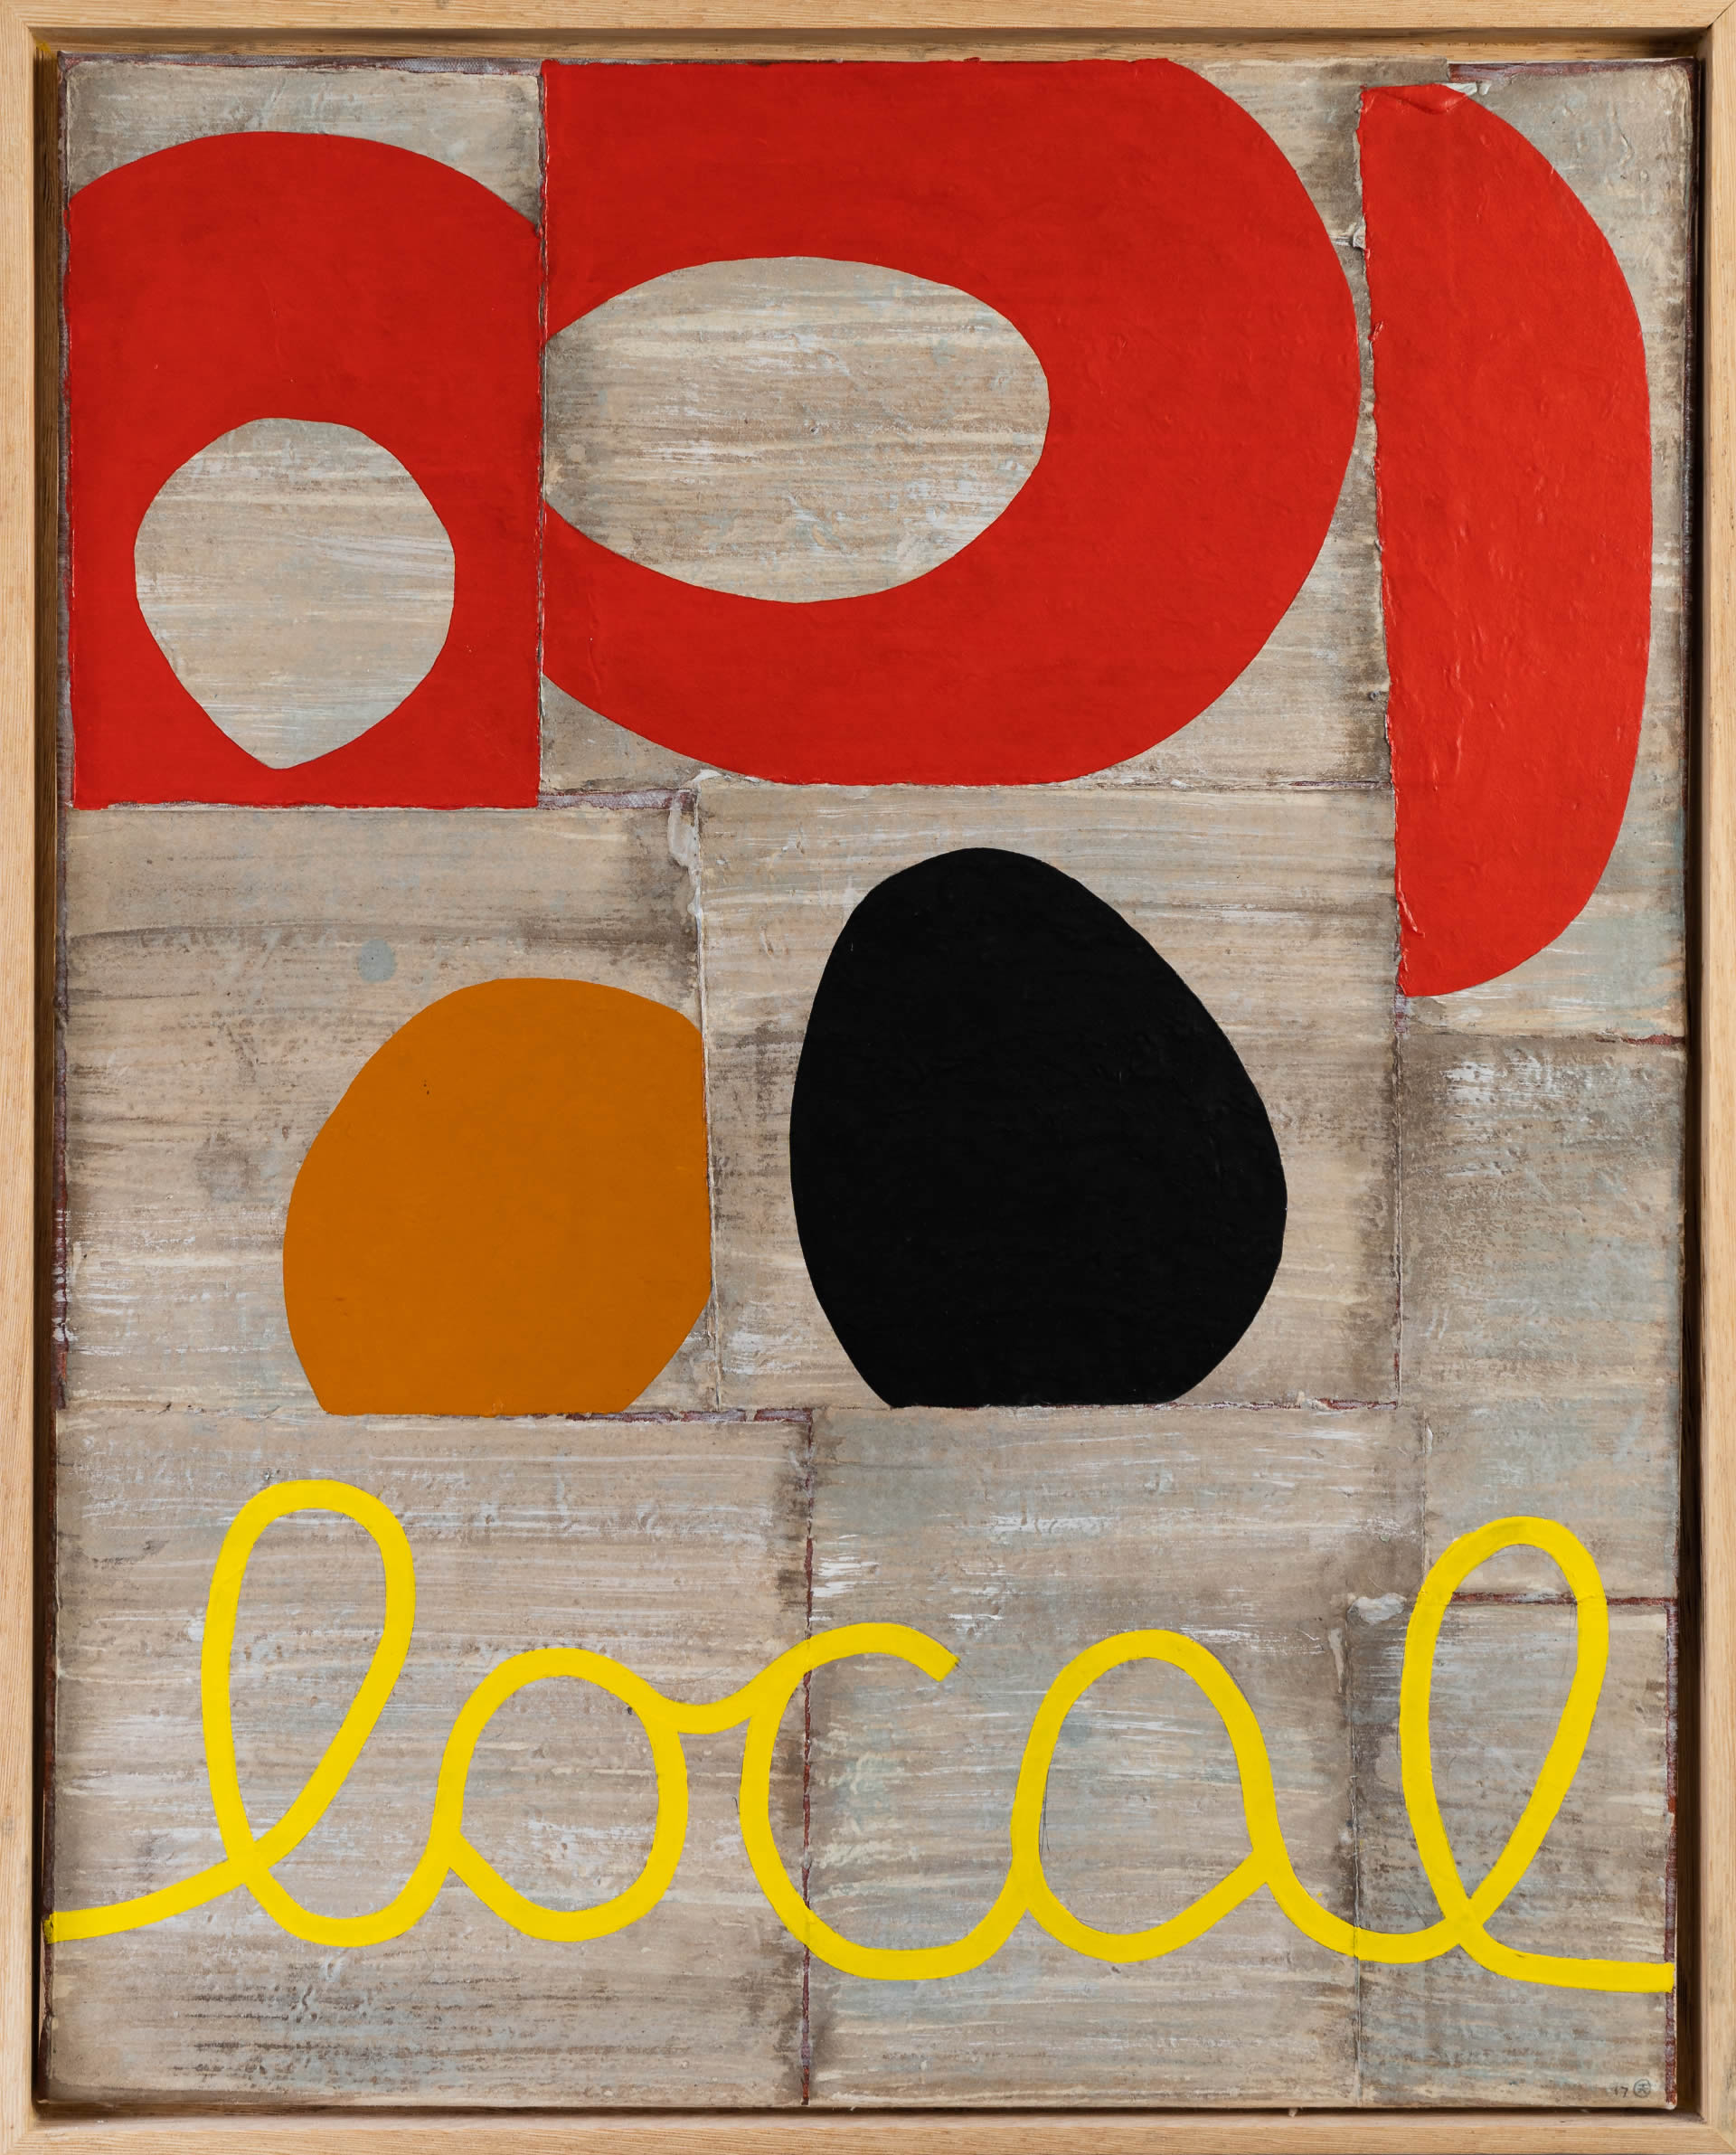 Hugh-Kearney-Local-Mixed-Media-On-Paper-On-Canvas-31_5x25_5-1900-Online-Art-Galleries